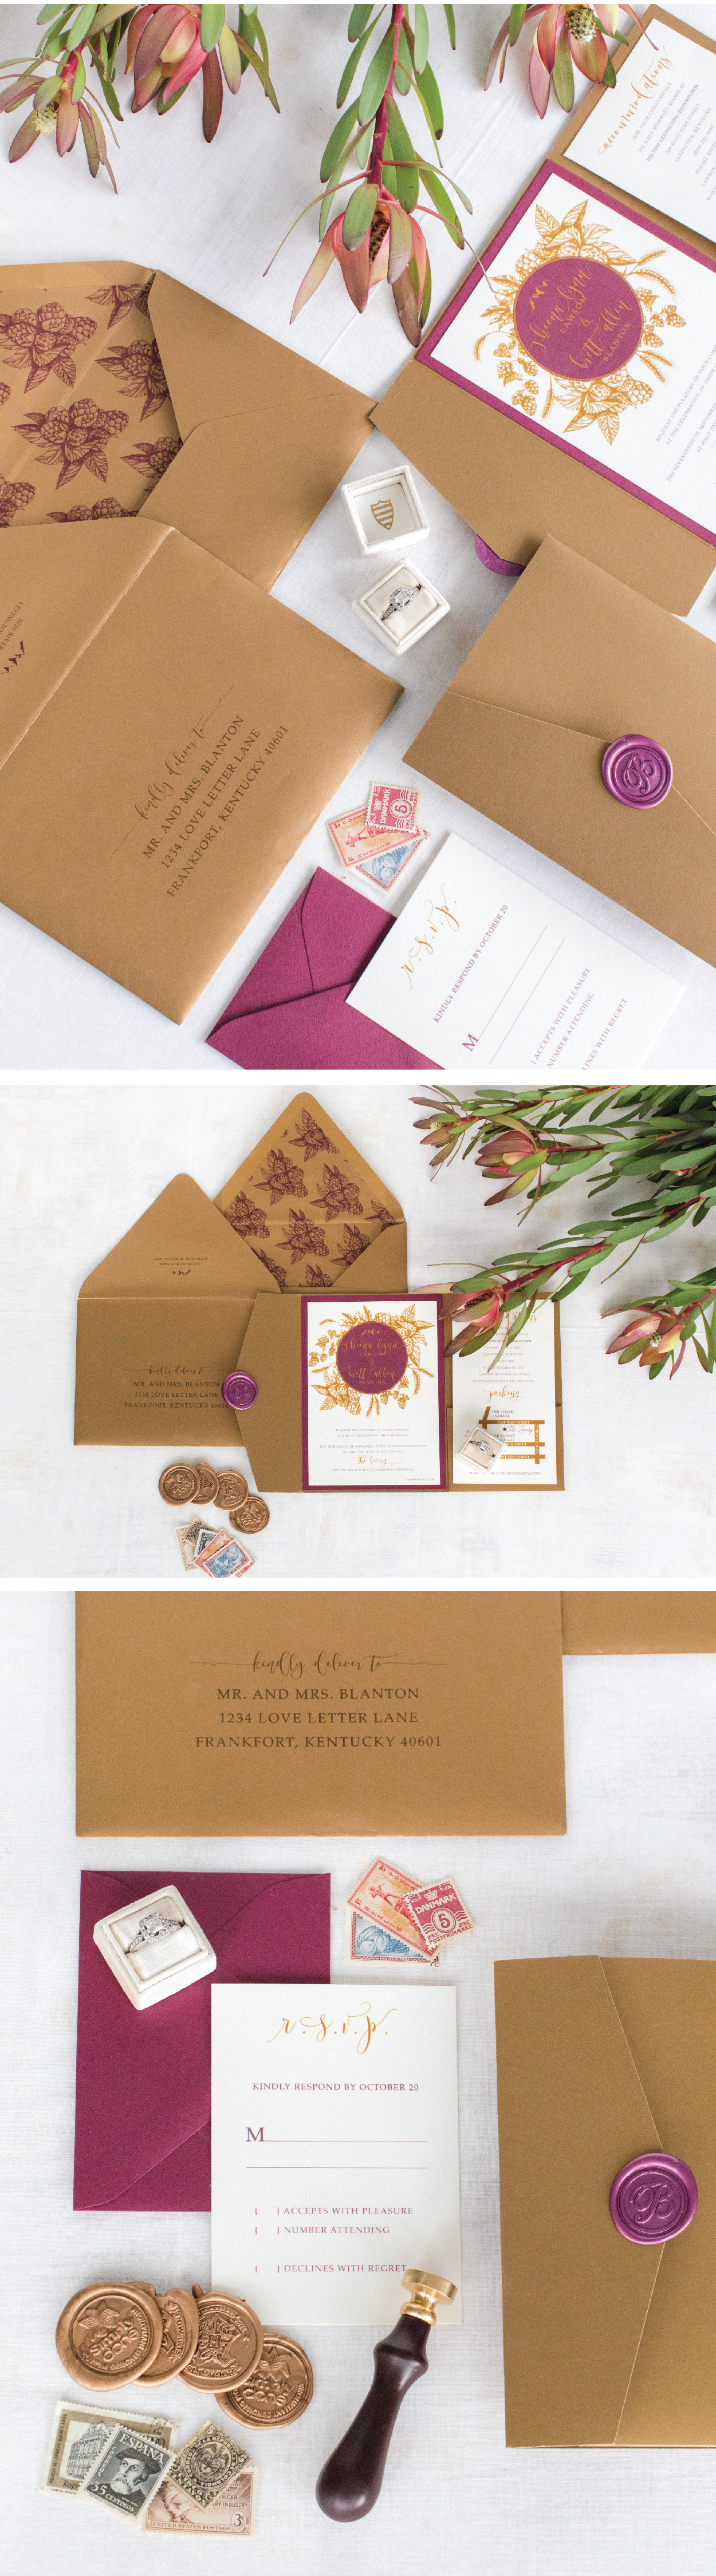 Pinterest Wedding Invites-01